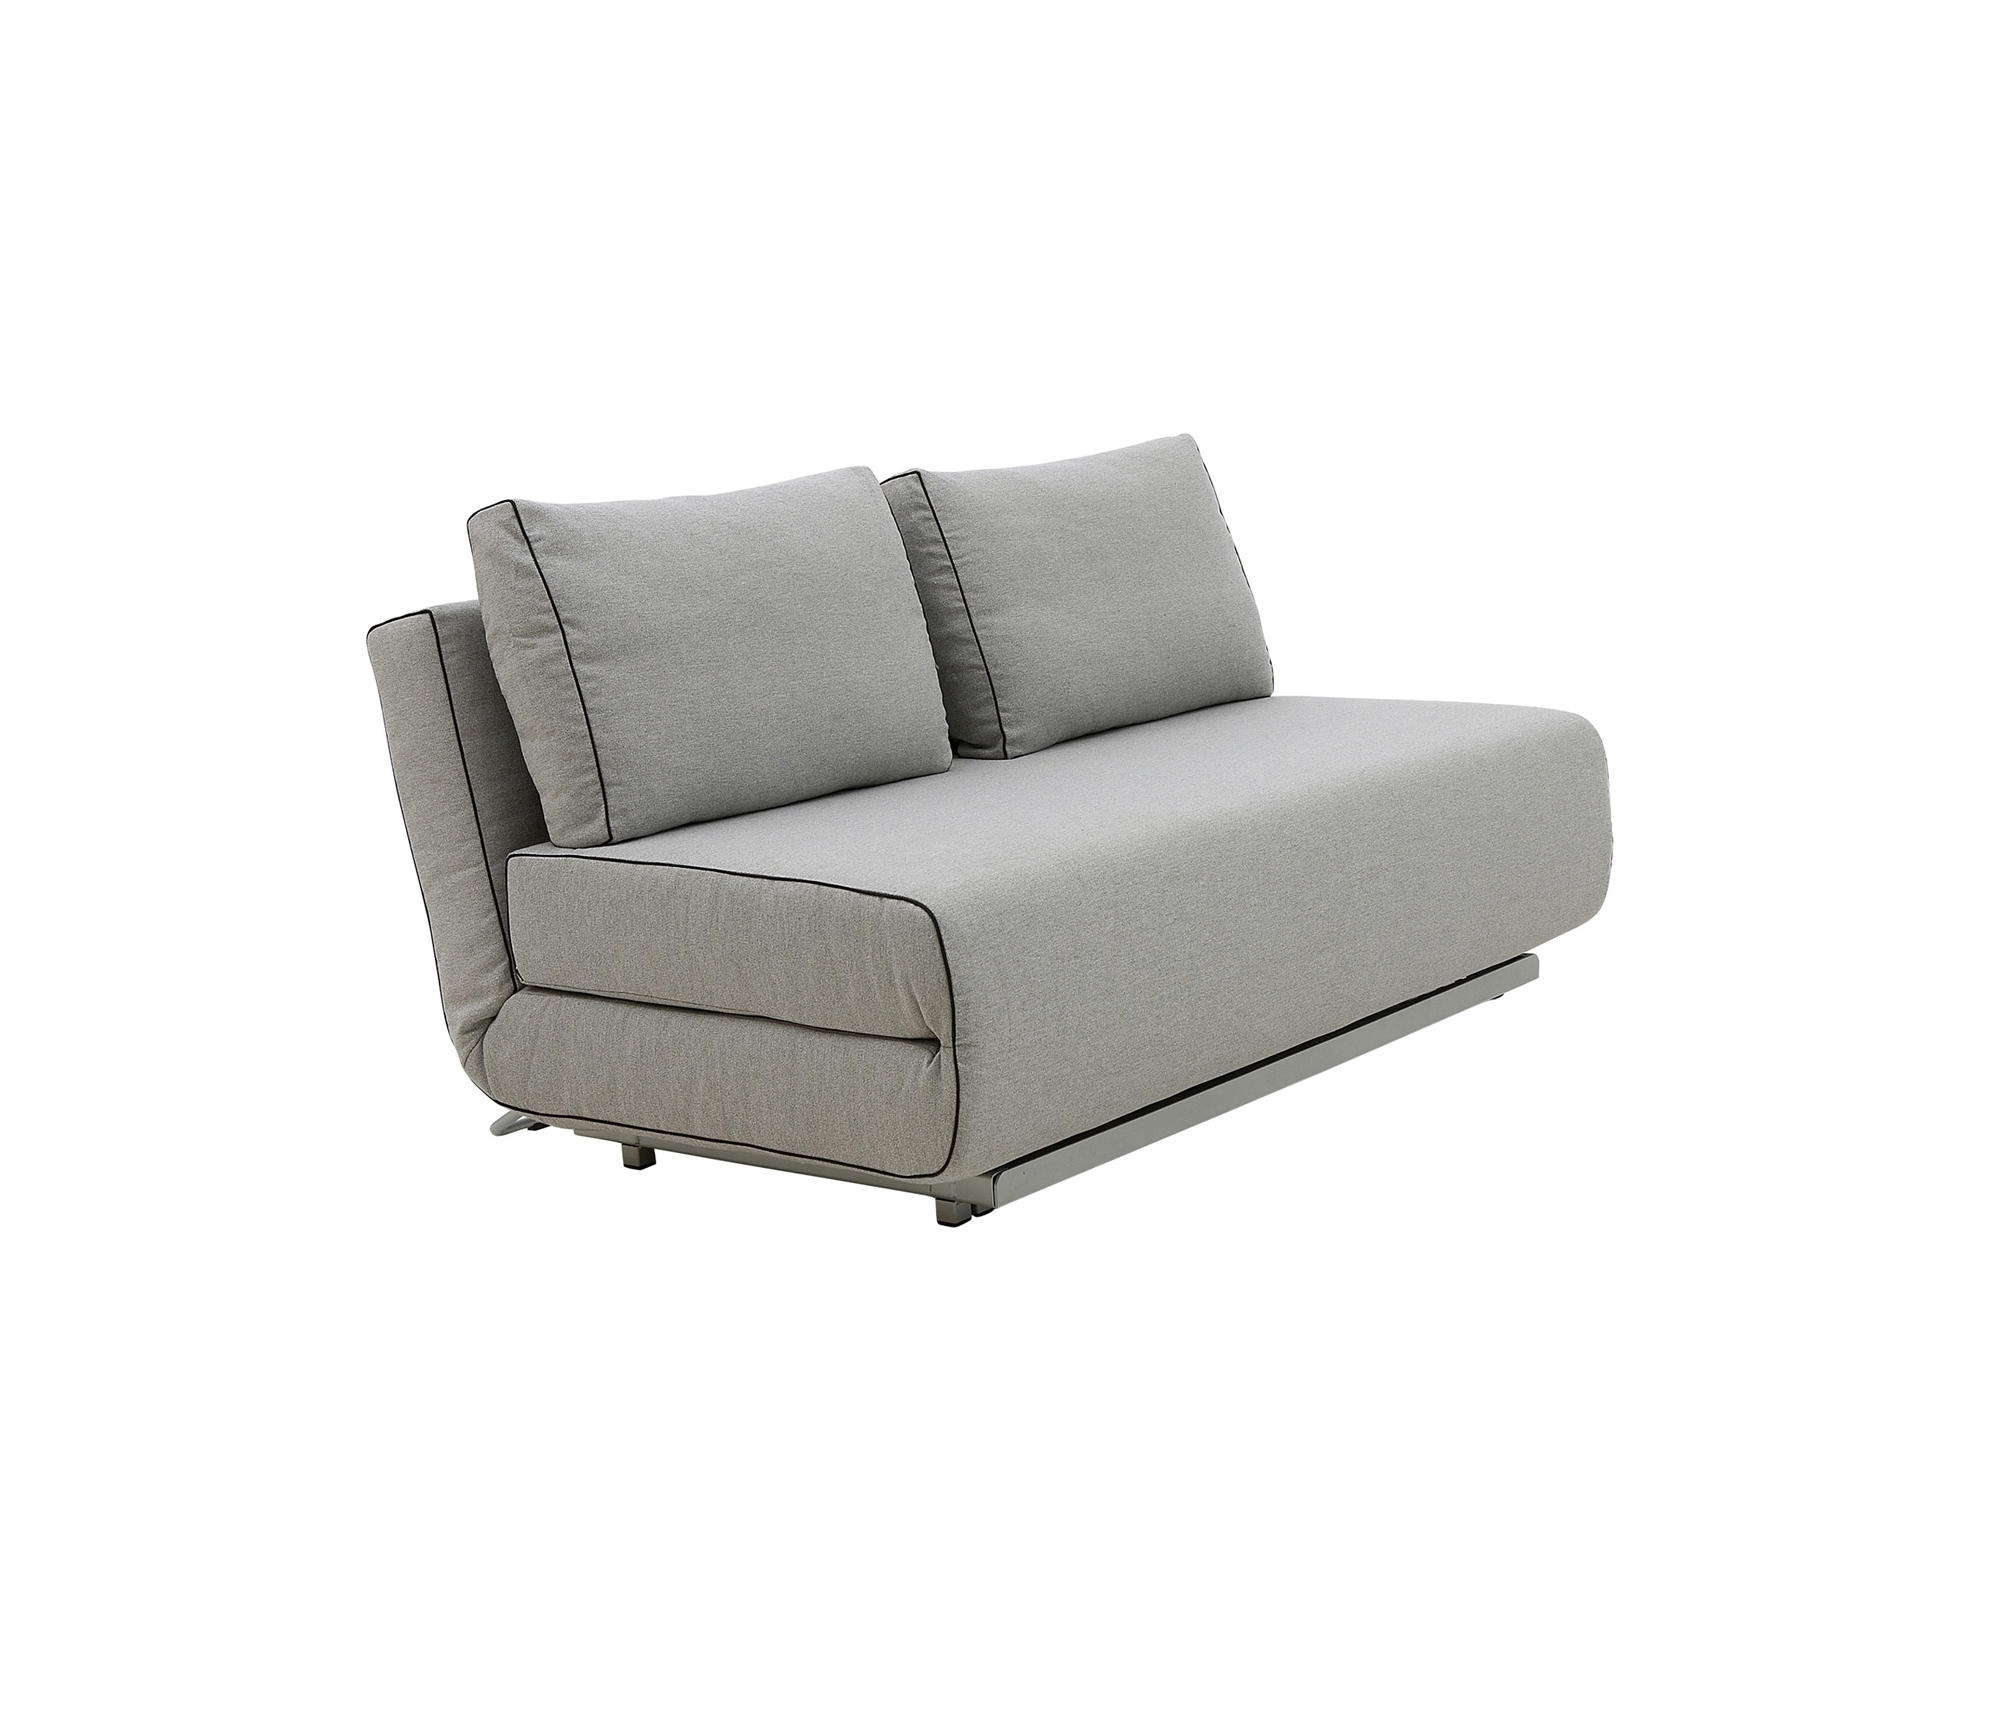 Architonic With City Sofa Beds (View 4 of 15)